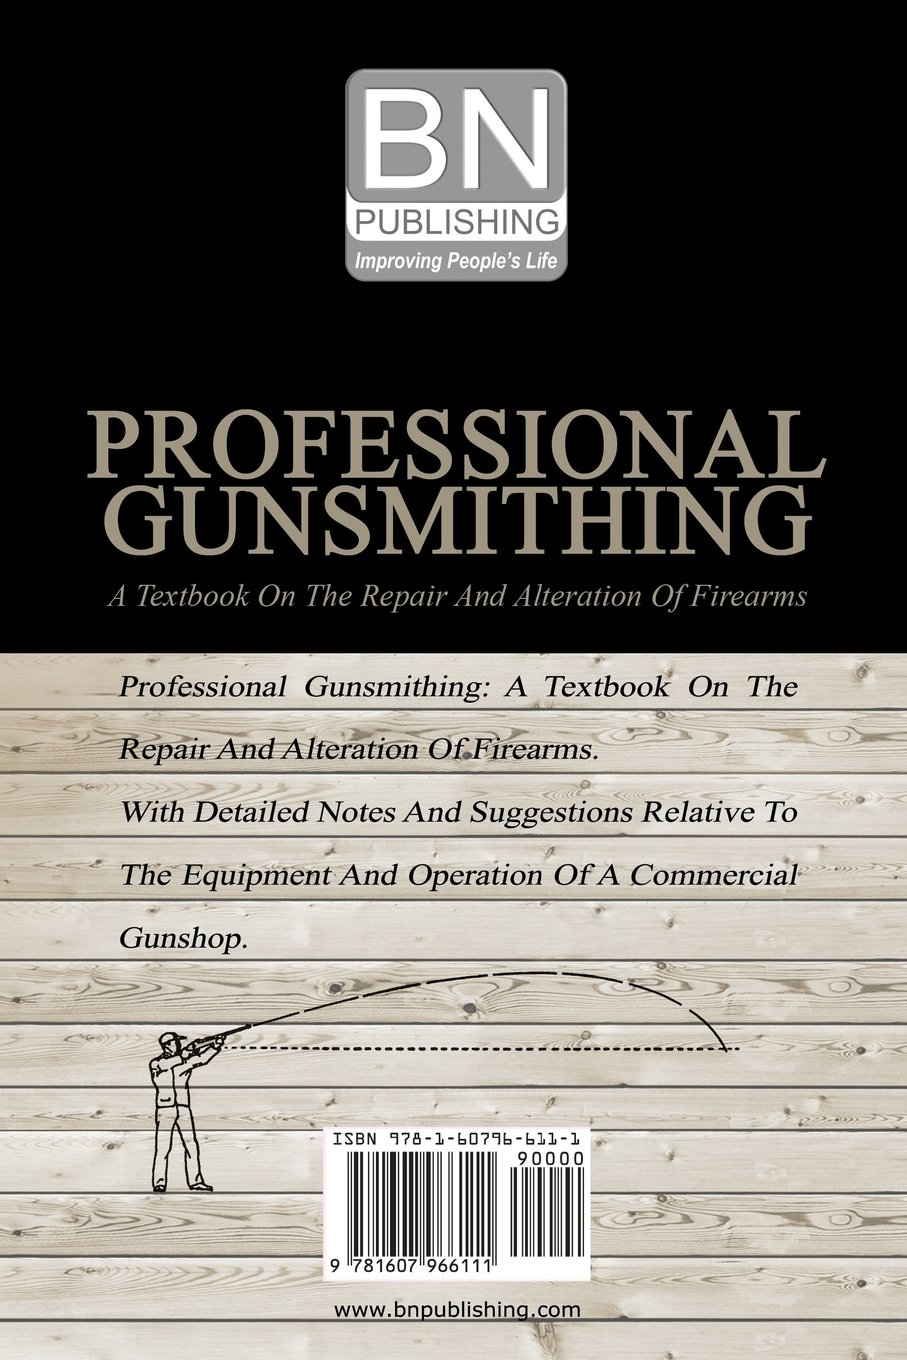 Amazon.com: Professional Gunsmithing: A Textbook On The Repair And ...